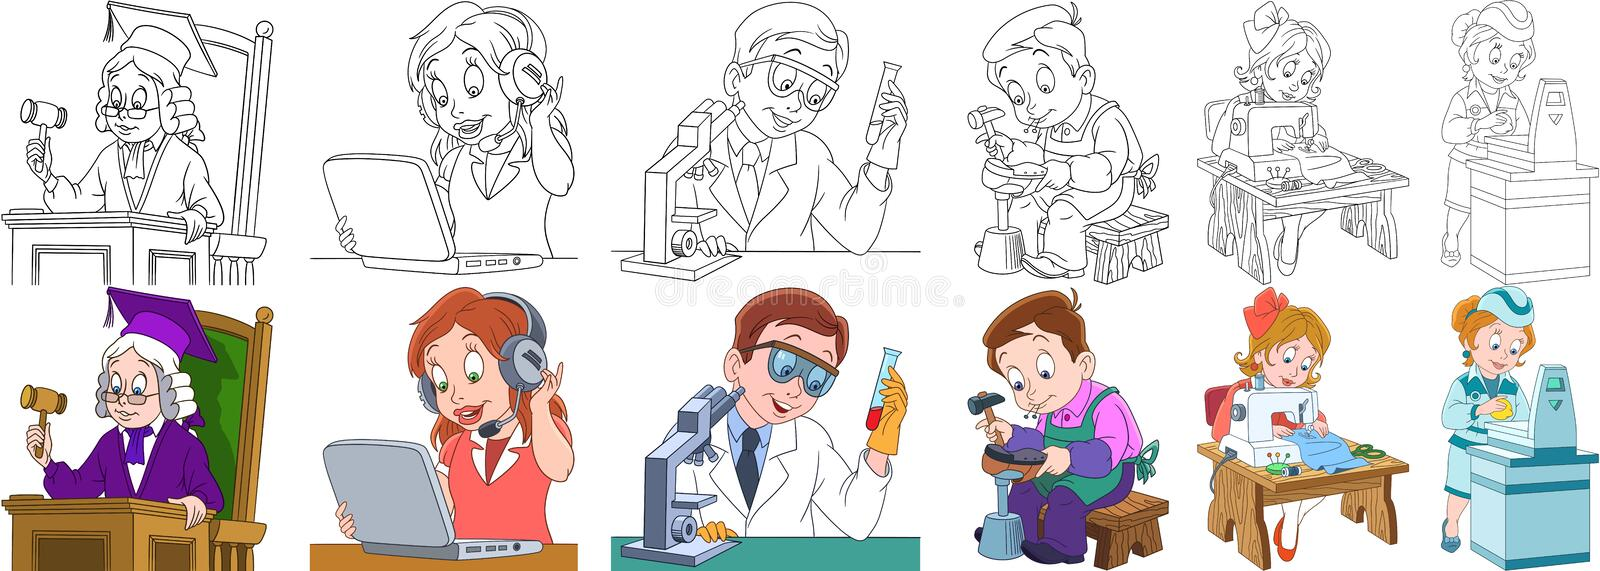 Cartoon professions set. Cartoon working people set. Collection of professions. Judge, operator of call center, chemical scientist, shoemaker cobbler, seamstress royalty free illustration